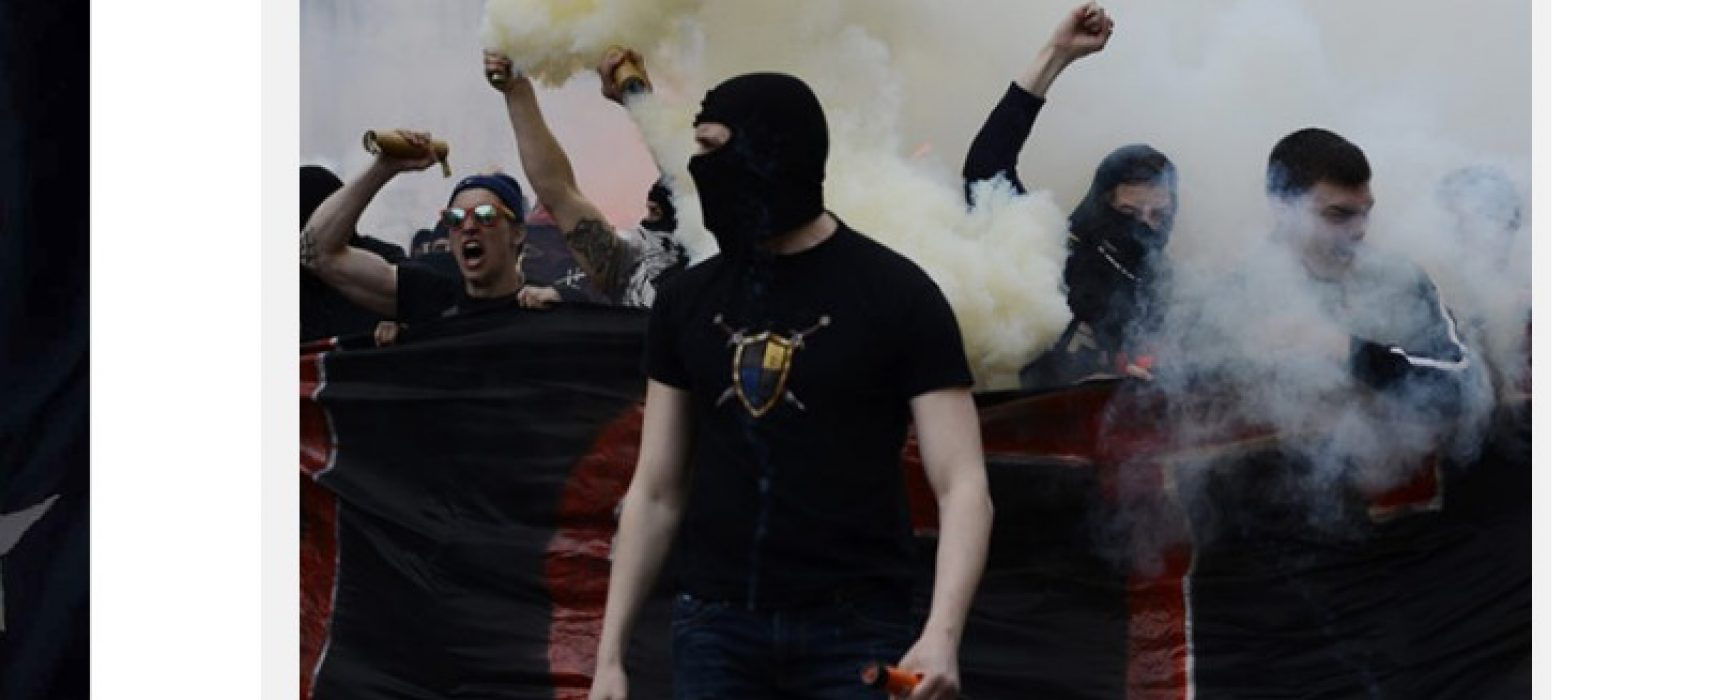 Right Sector and Mossad Accused of Football Hooliganism Organization in Marseilles